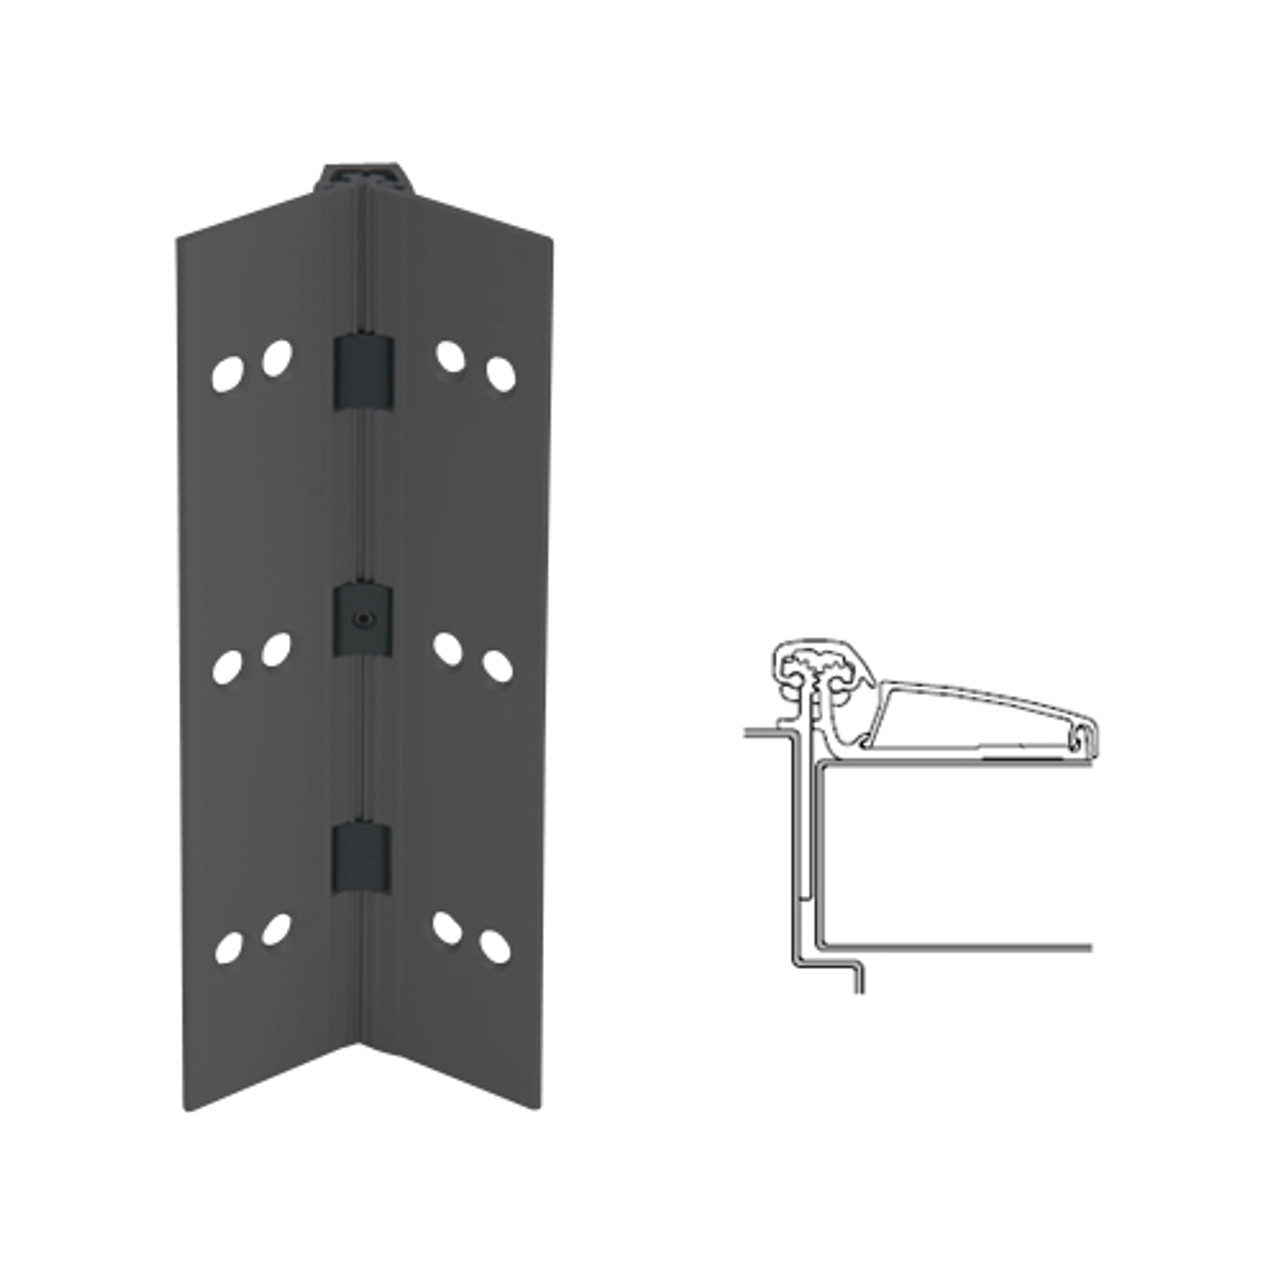 045XY-315AN-85-SECWDHM IVES Adjustable Half Surface Continuous Geared Hinges with Security Screws - Hex Pin Drive in Anodized Black